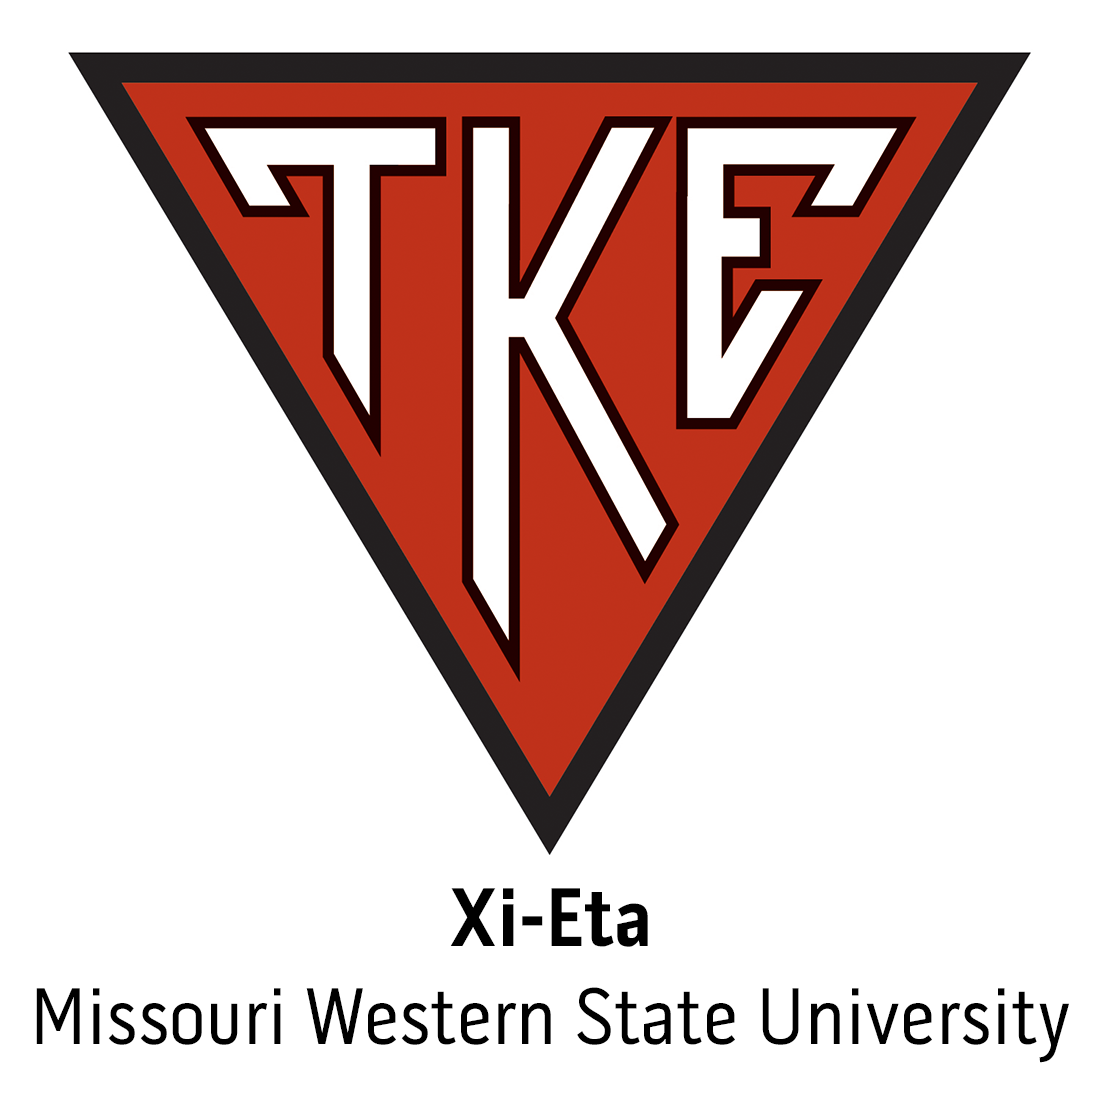 Xi-Eta Chapter at Missouri Western State University